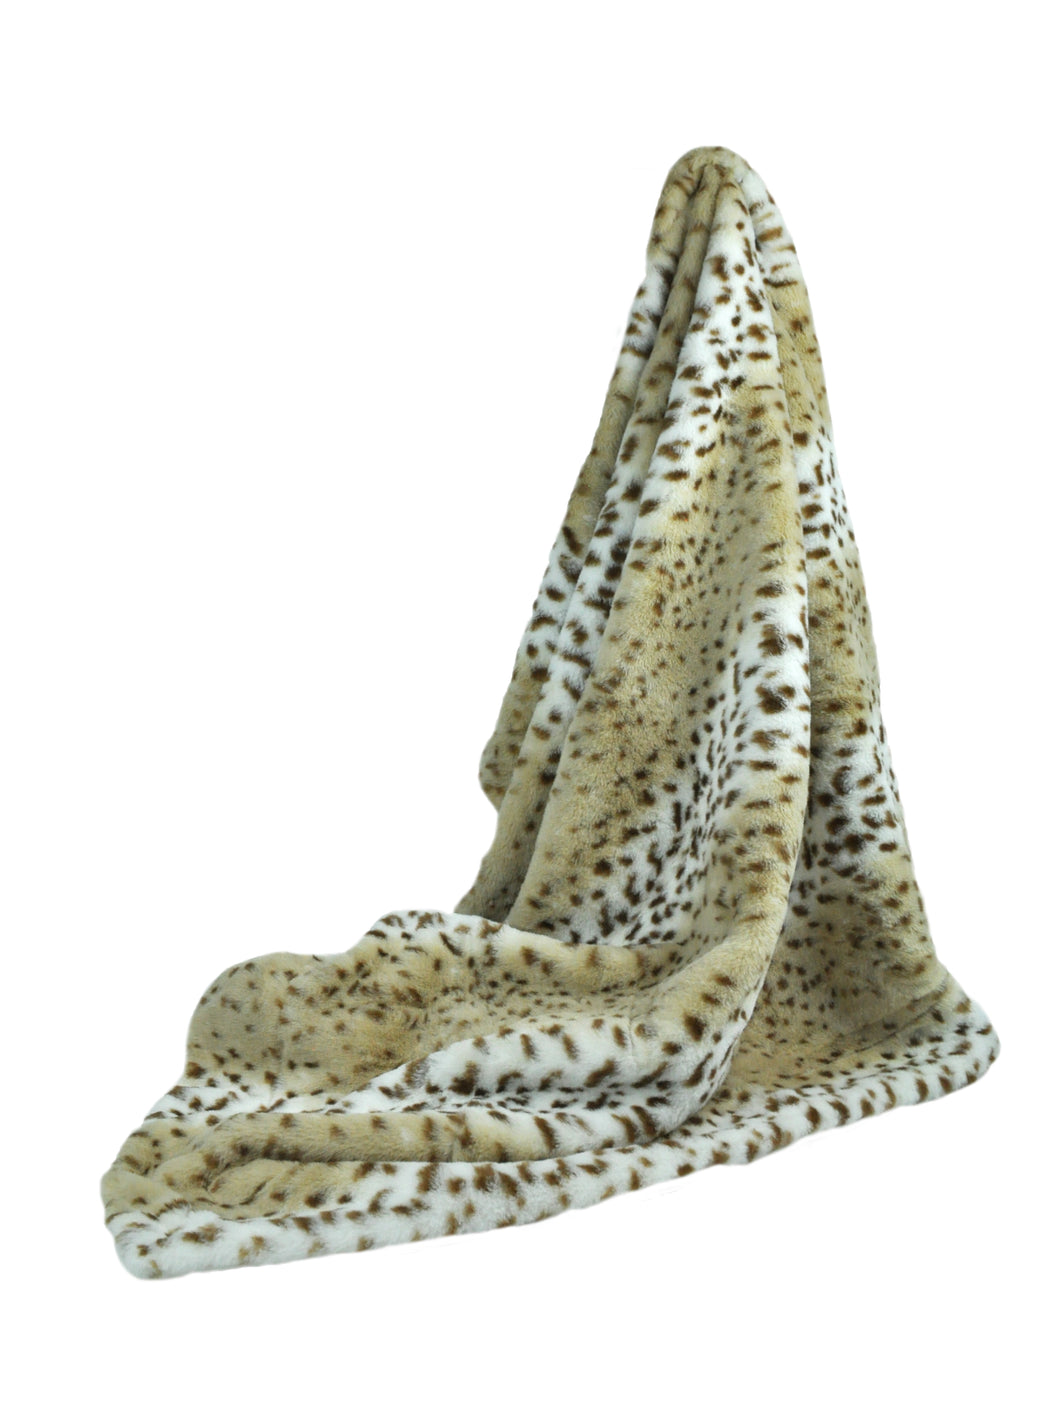 Jenny Mclean New Faux Throws 127x152cm Multi Animal Design throws Blankets